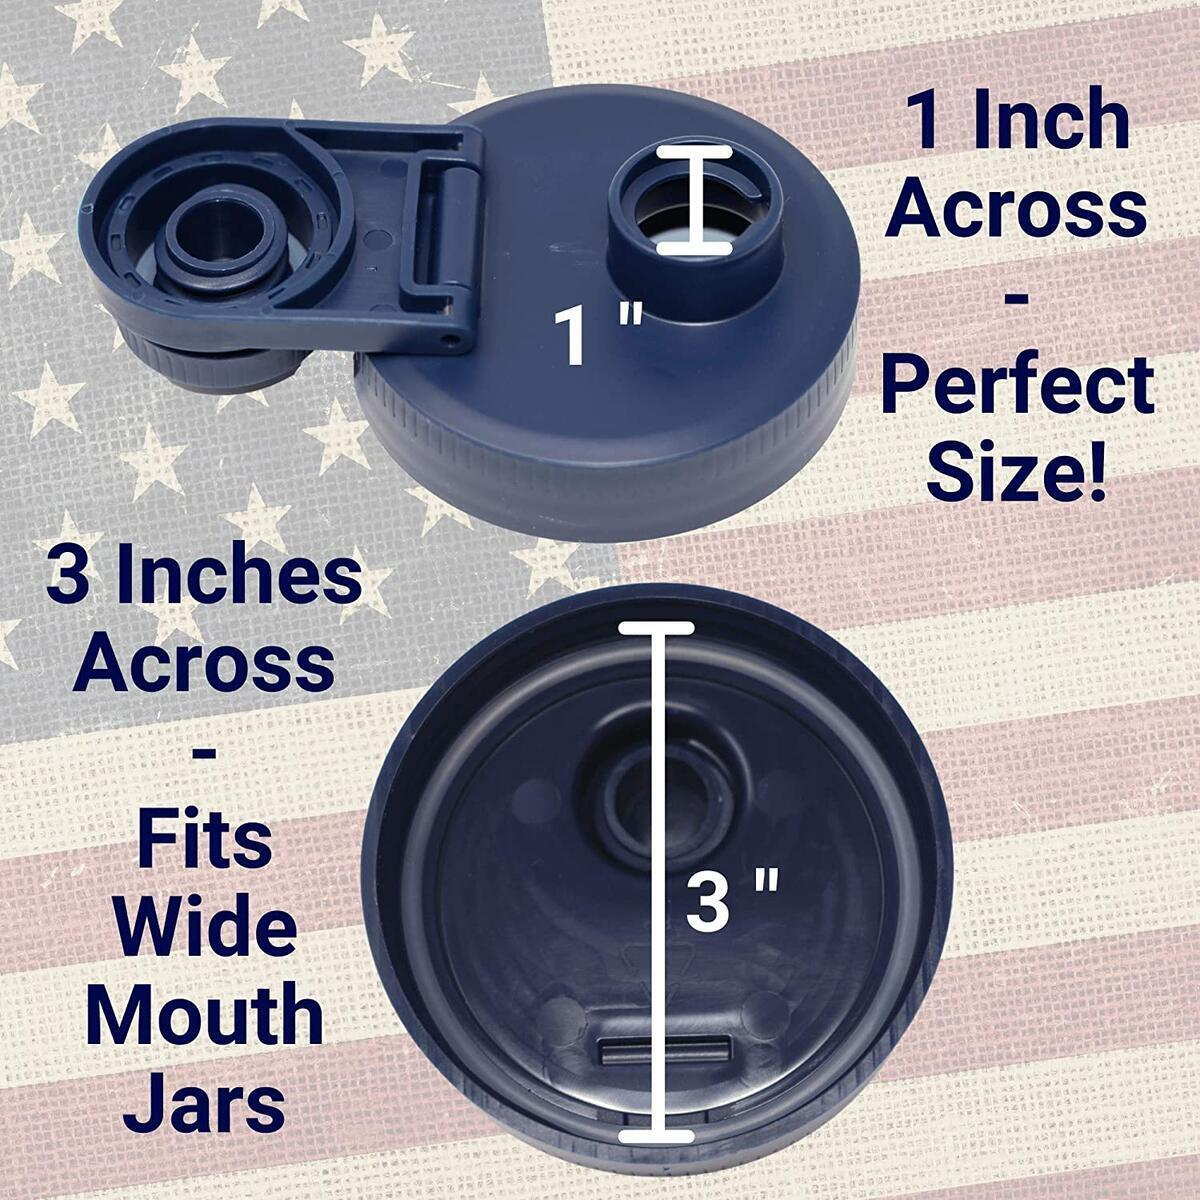 Wide Mouth Mason Jar Lid with Screw-on Flip Top - Perfect for sipping or storing and pouring (Blue - 1 pack) Made in America